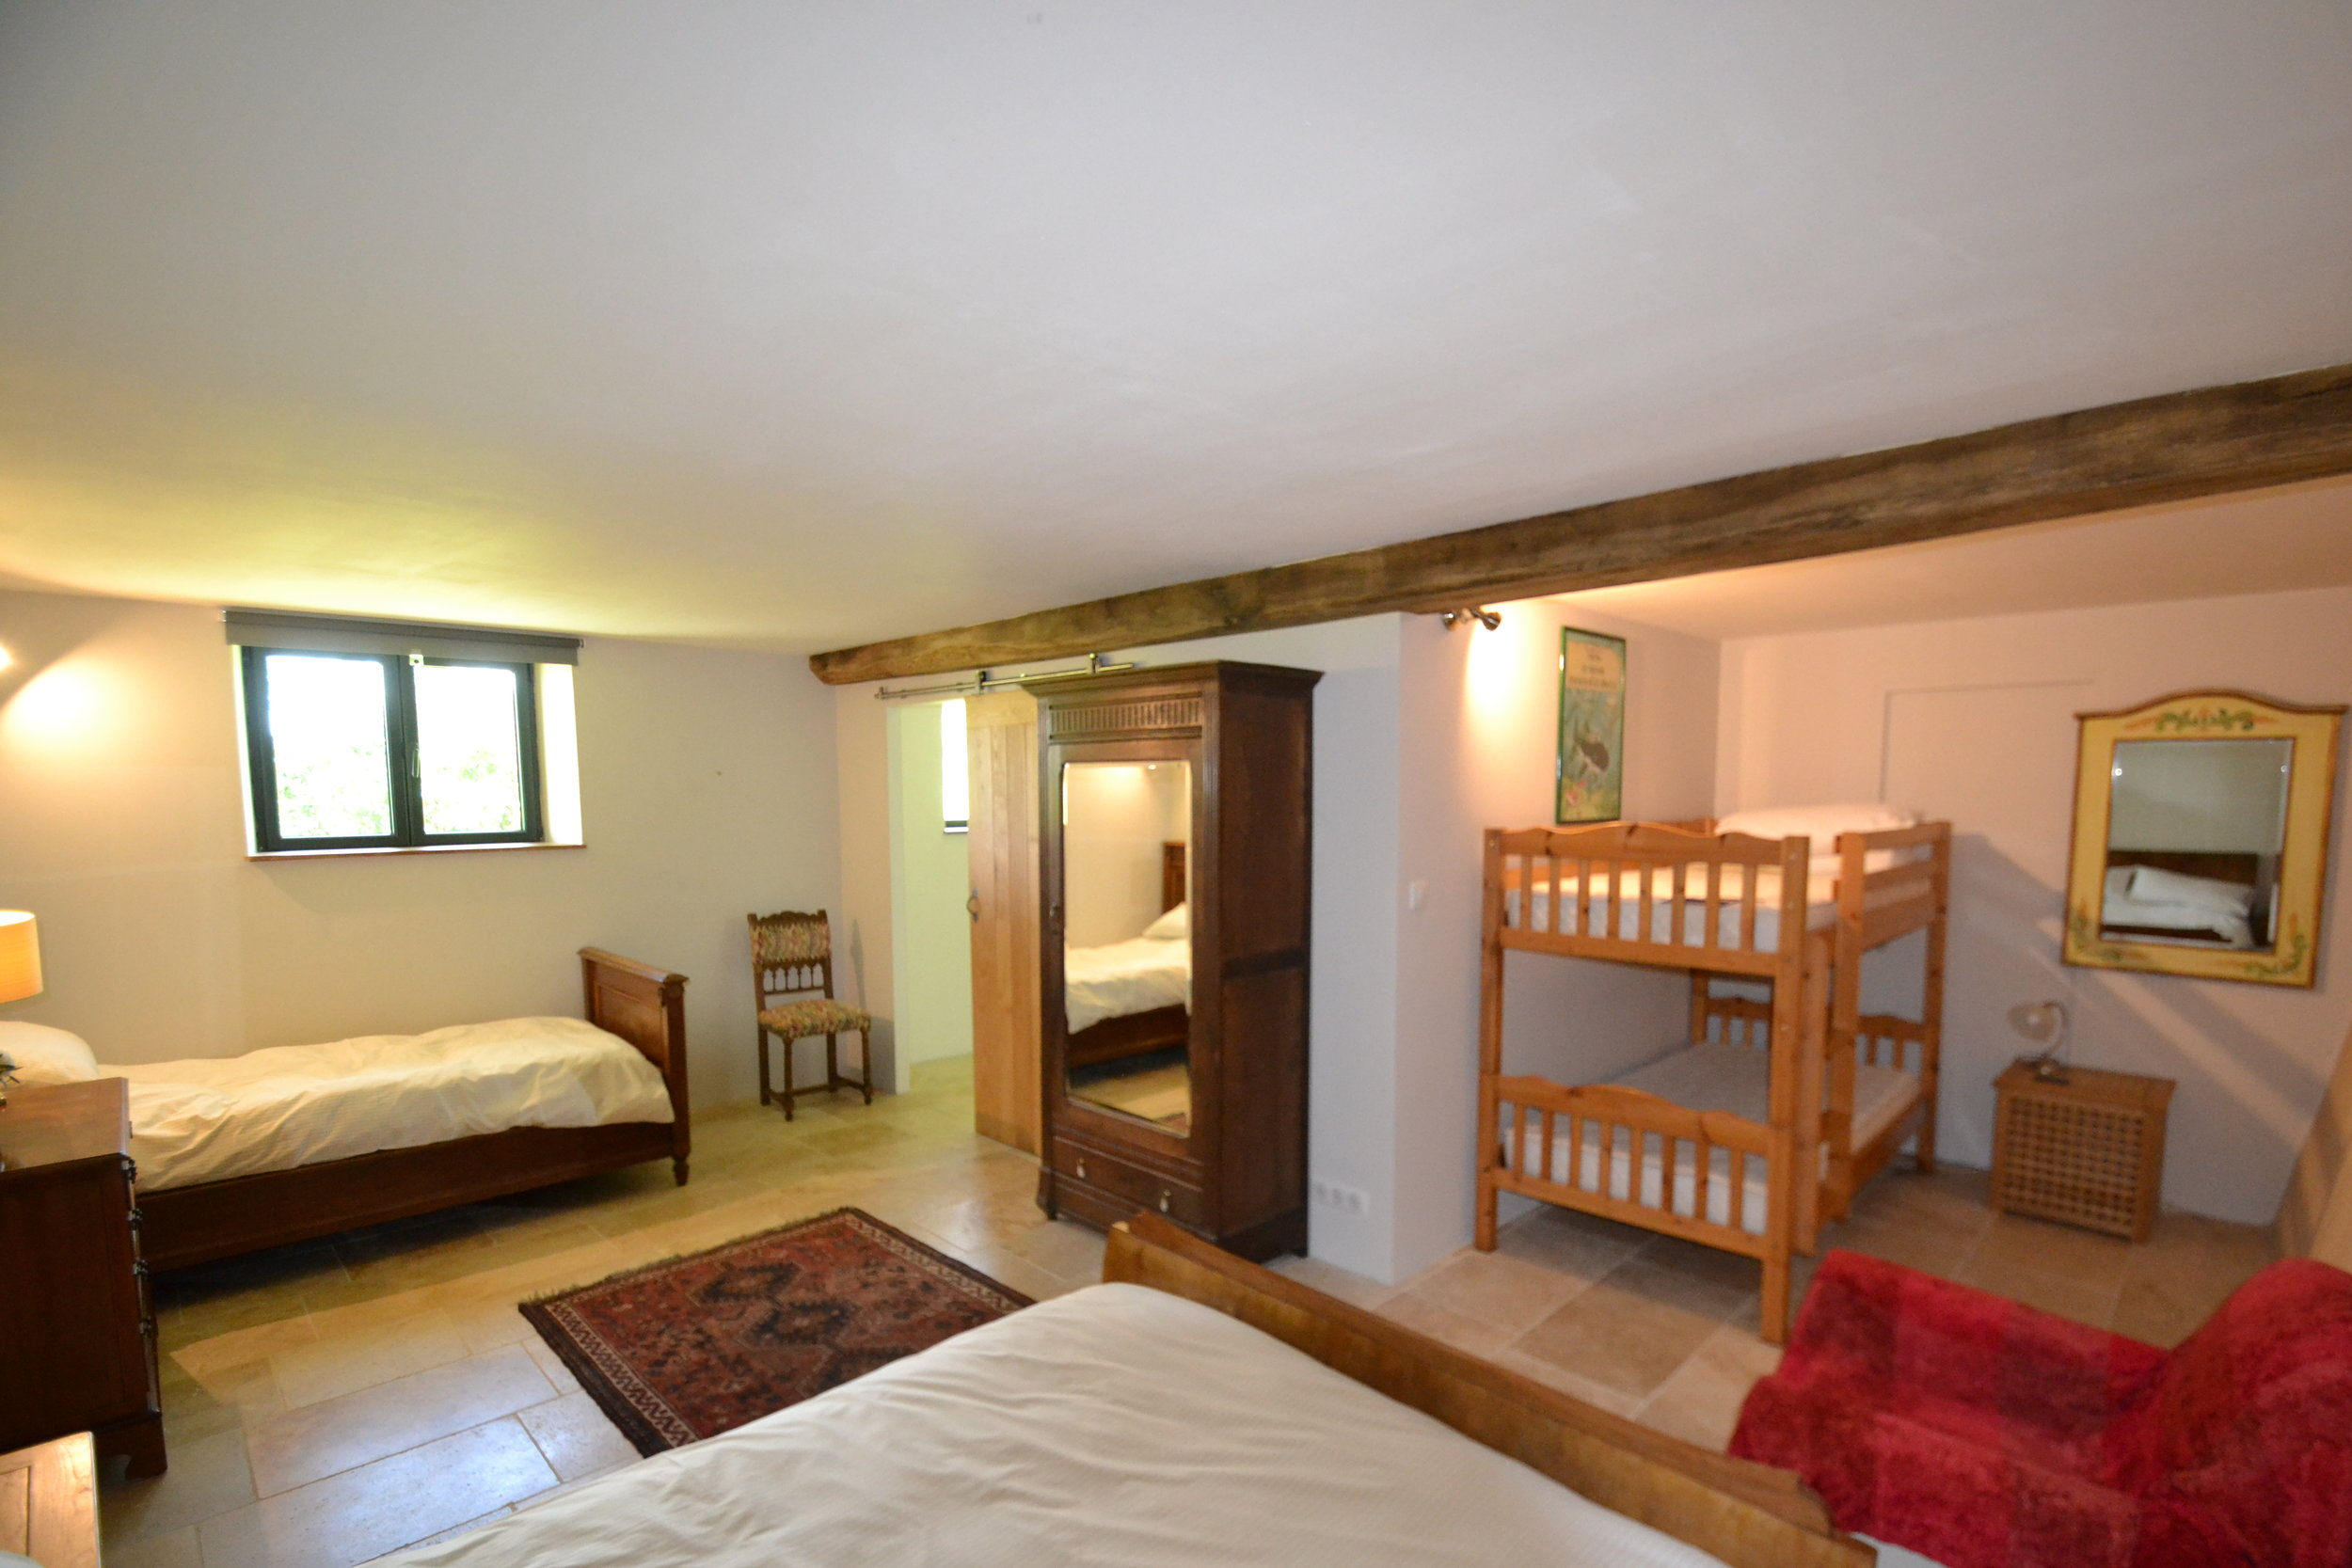 Bedroom 3 Bed selection